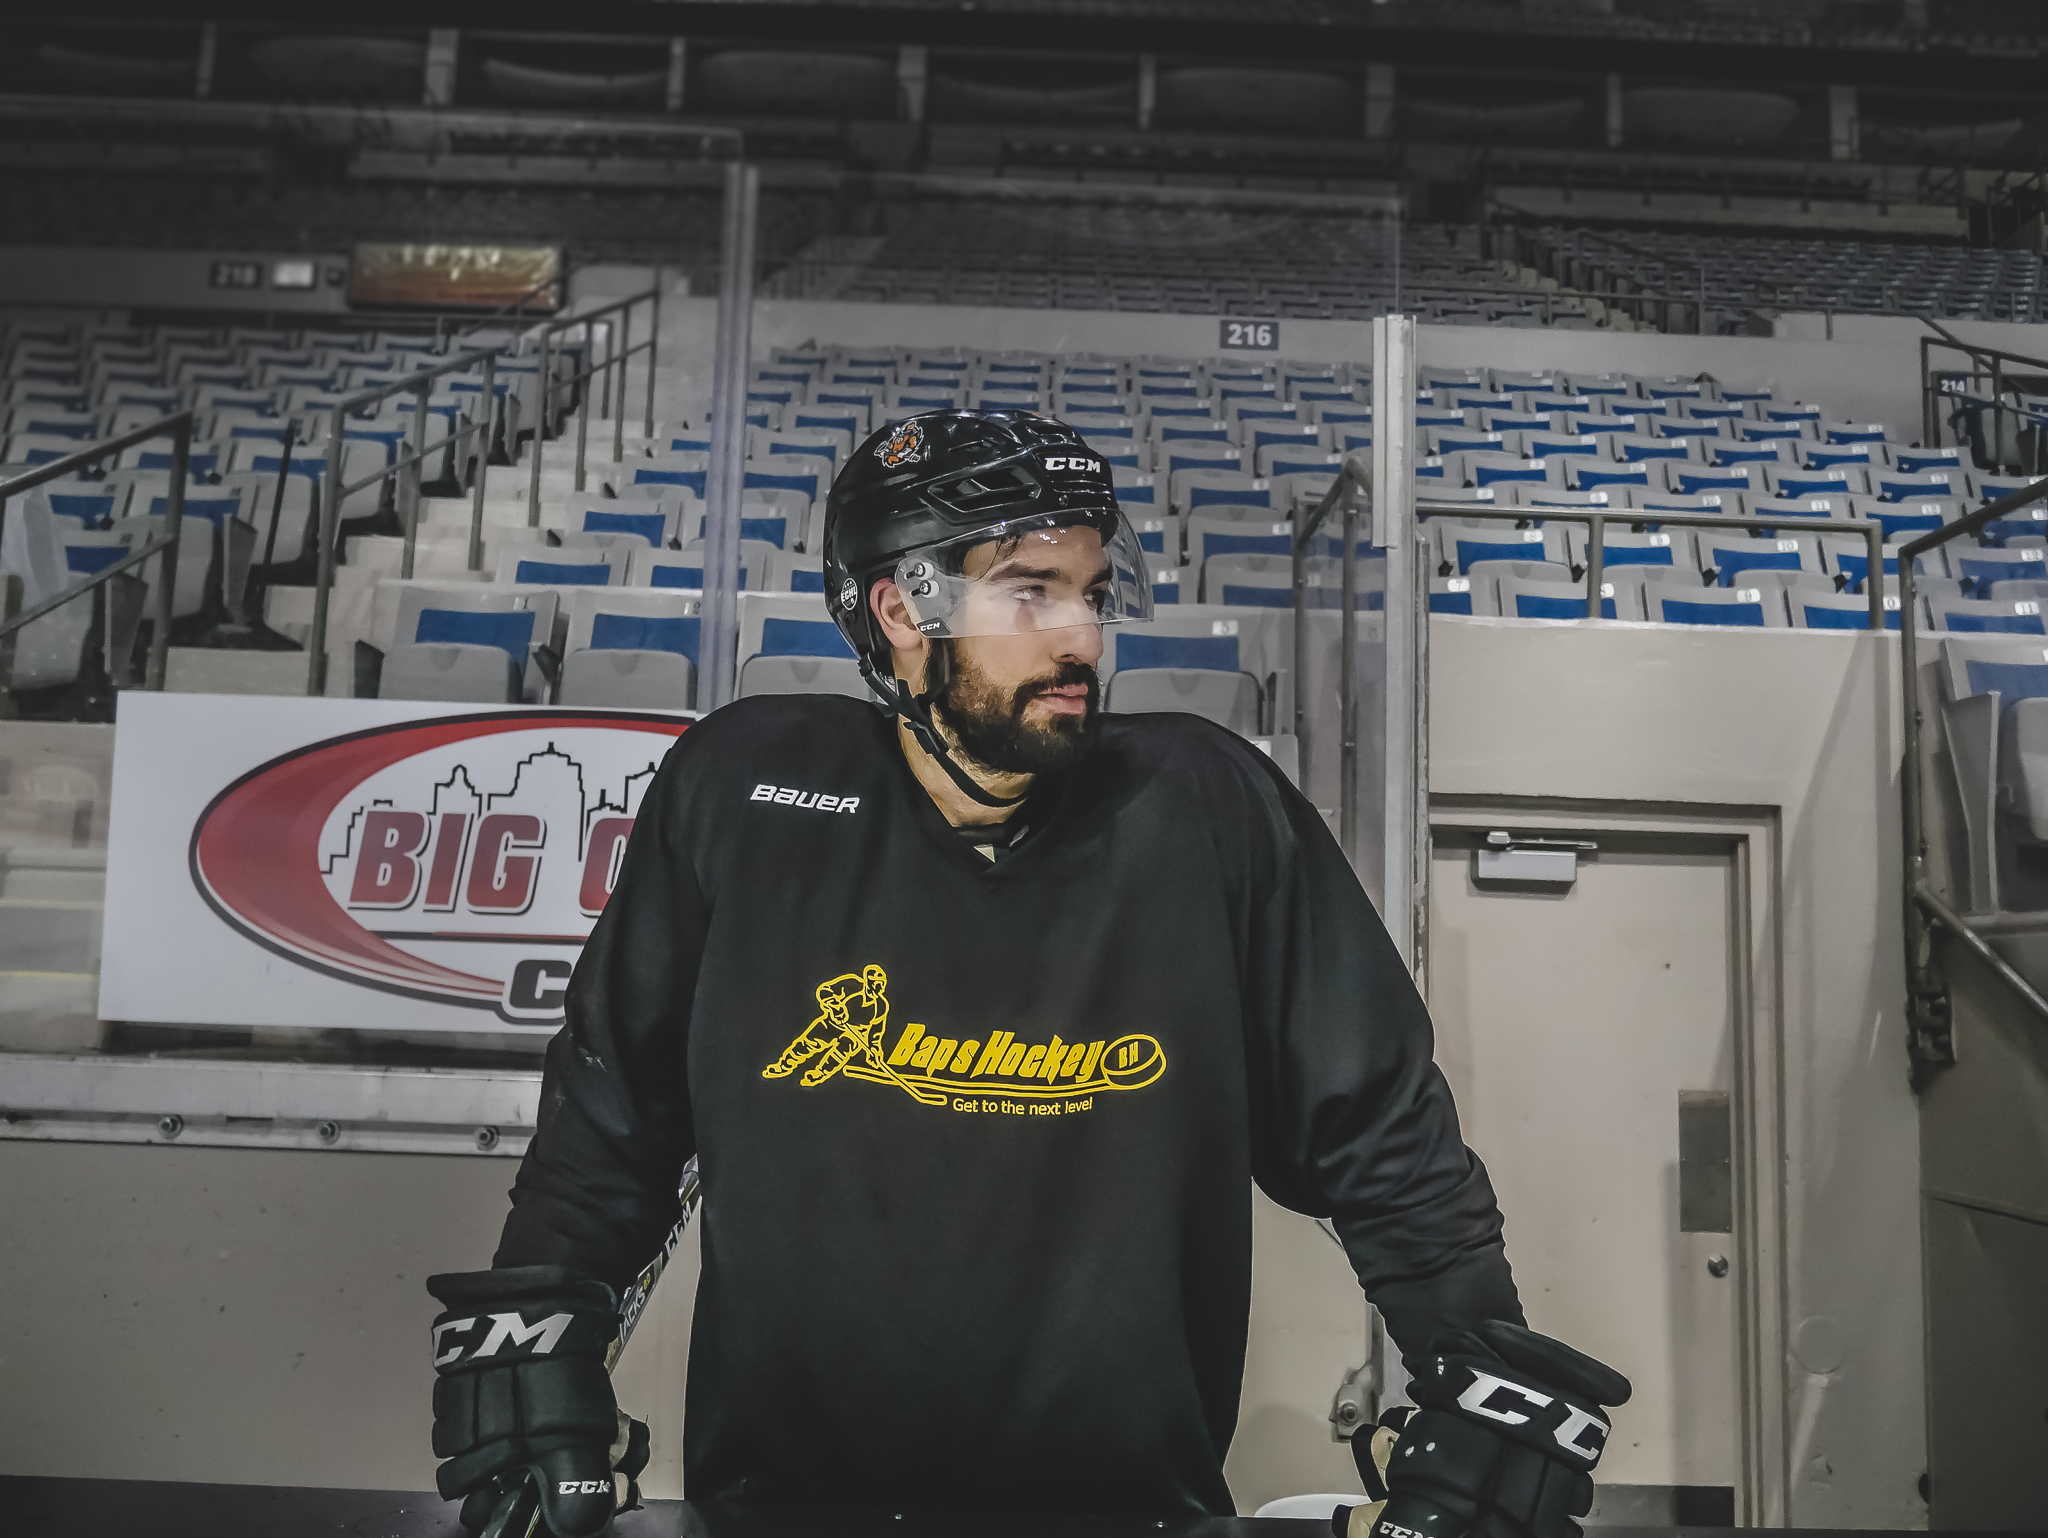 - Part One: Every journey has a process, an accumulation of events that eventually leads a hockey player to a destination. Whether that destination is the intended target or a completely new situation, it eventually becomes a story. Now every story is a unique tale with crazy twists and turns that challenges every hockey player mentally and physically. My story, like yours, has been quite the unique one and unconventional in the hockey world. I've gone through the ringer and am still battling my way up that hockey ladder today. Why do I do this? Well like every great story started, it all began with a dream. That dream is to play in the NHL one day. That dream has grown and evolved over time but at it's core, is still the same. Think back to when you were a young hockey player? You were filled with passion, love and excitement to the eye balls just to get on that ice. I remember going to practices an hour earlier in the mornings hoping I'd be able to get on that ice before everyone to work on my game. The funny thing is, I still do that today as a 29 year old playing my fourth year of pro hockey. I'm still filled with that same passion, love and excitement for the game that I had when I was 8 years old. That's why I still do what I do. It drives me to push my self to my limits and hopefully one day get an opportunity at that next level.I have more to share about my story but I want to hear from you. What's your story? I'm interested in hearing your unique story and hopefully help be a part of that story. BapsHockey is here to help you build your unique story. Jump on the website and click the my journey tab to share your story and see how we can help you get to that next level. We don't just build top level players with cerebral Hockey IQ. We are building the next generation of hockey players with a unique story to that next level.